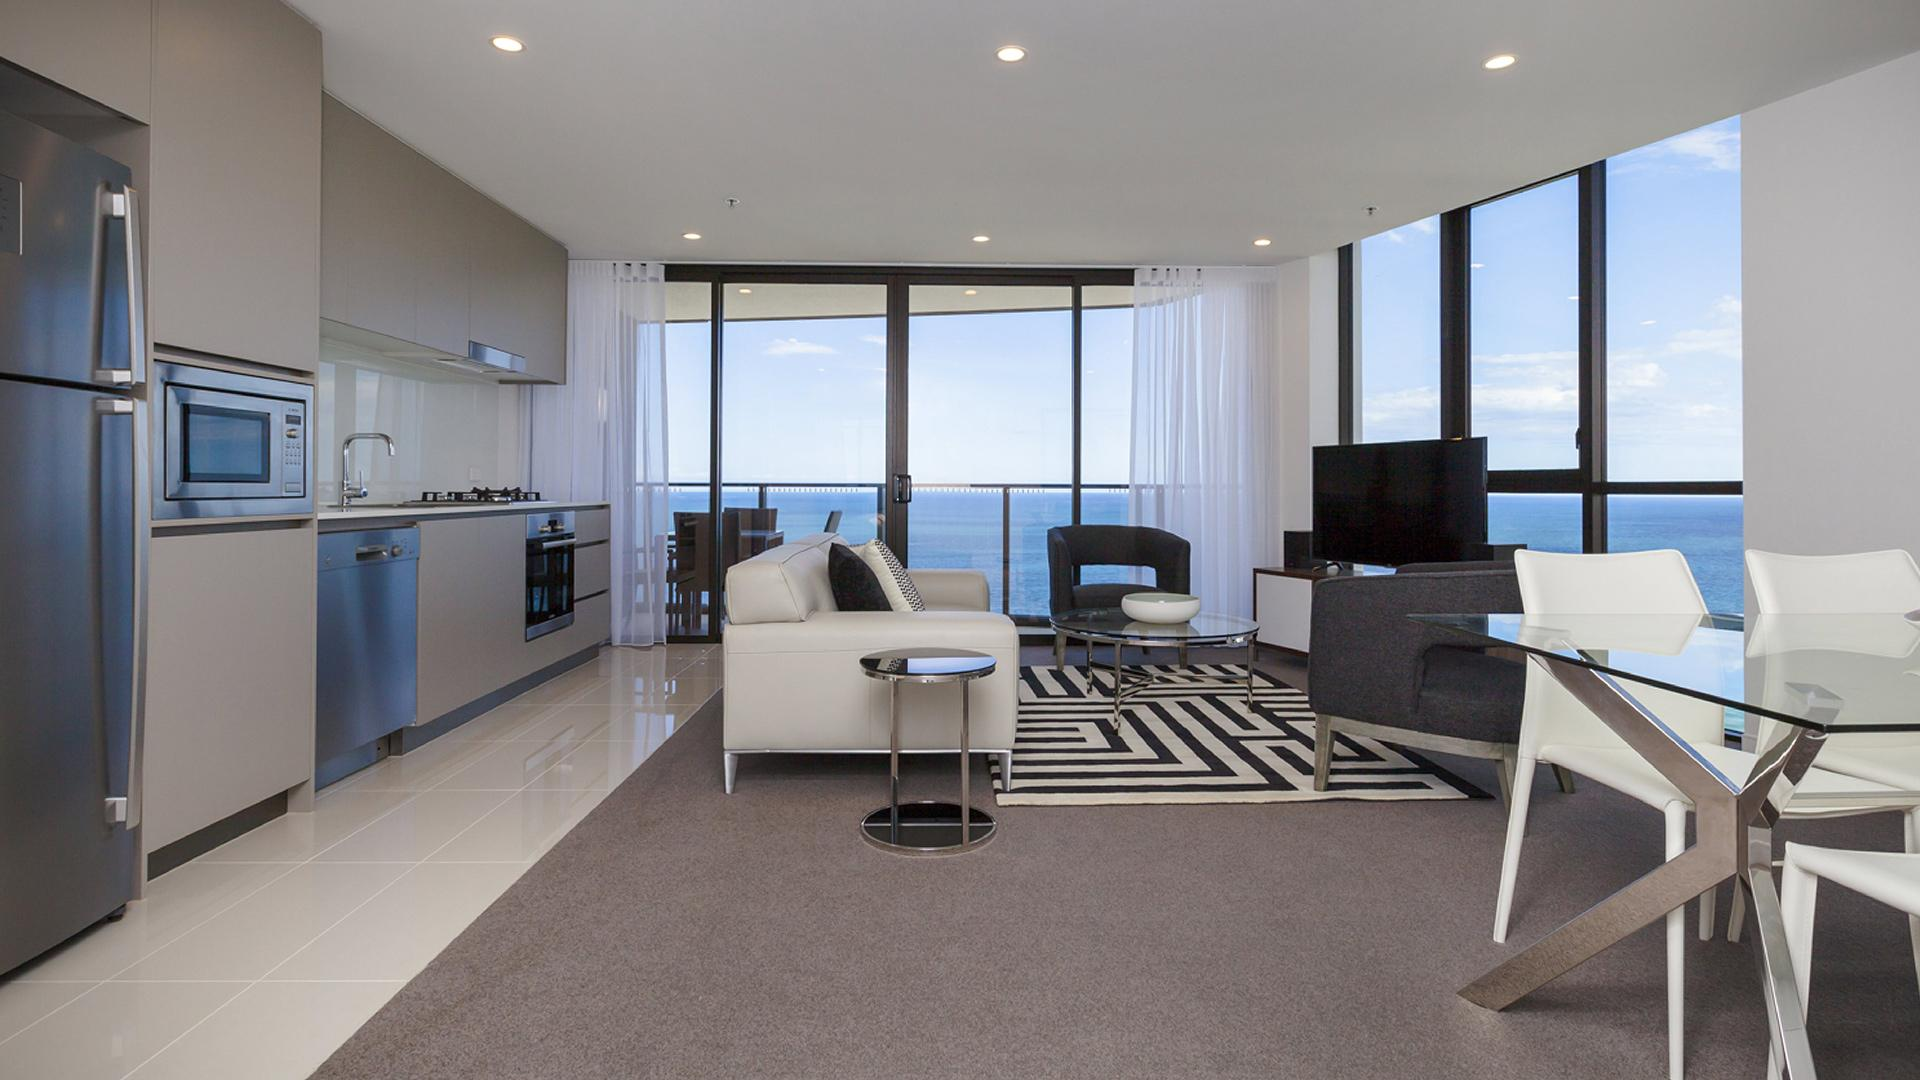 Two-Bedroom Ocean View Apartment - 3 Nights image 1 at Rhapsody Resort by City of Gold Coast, Queensland, Australia